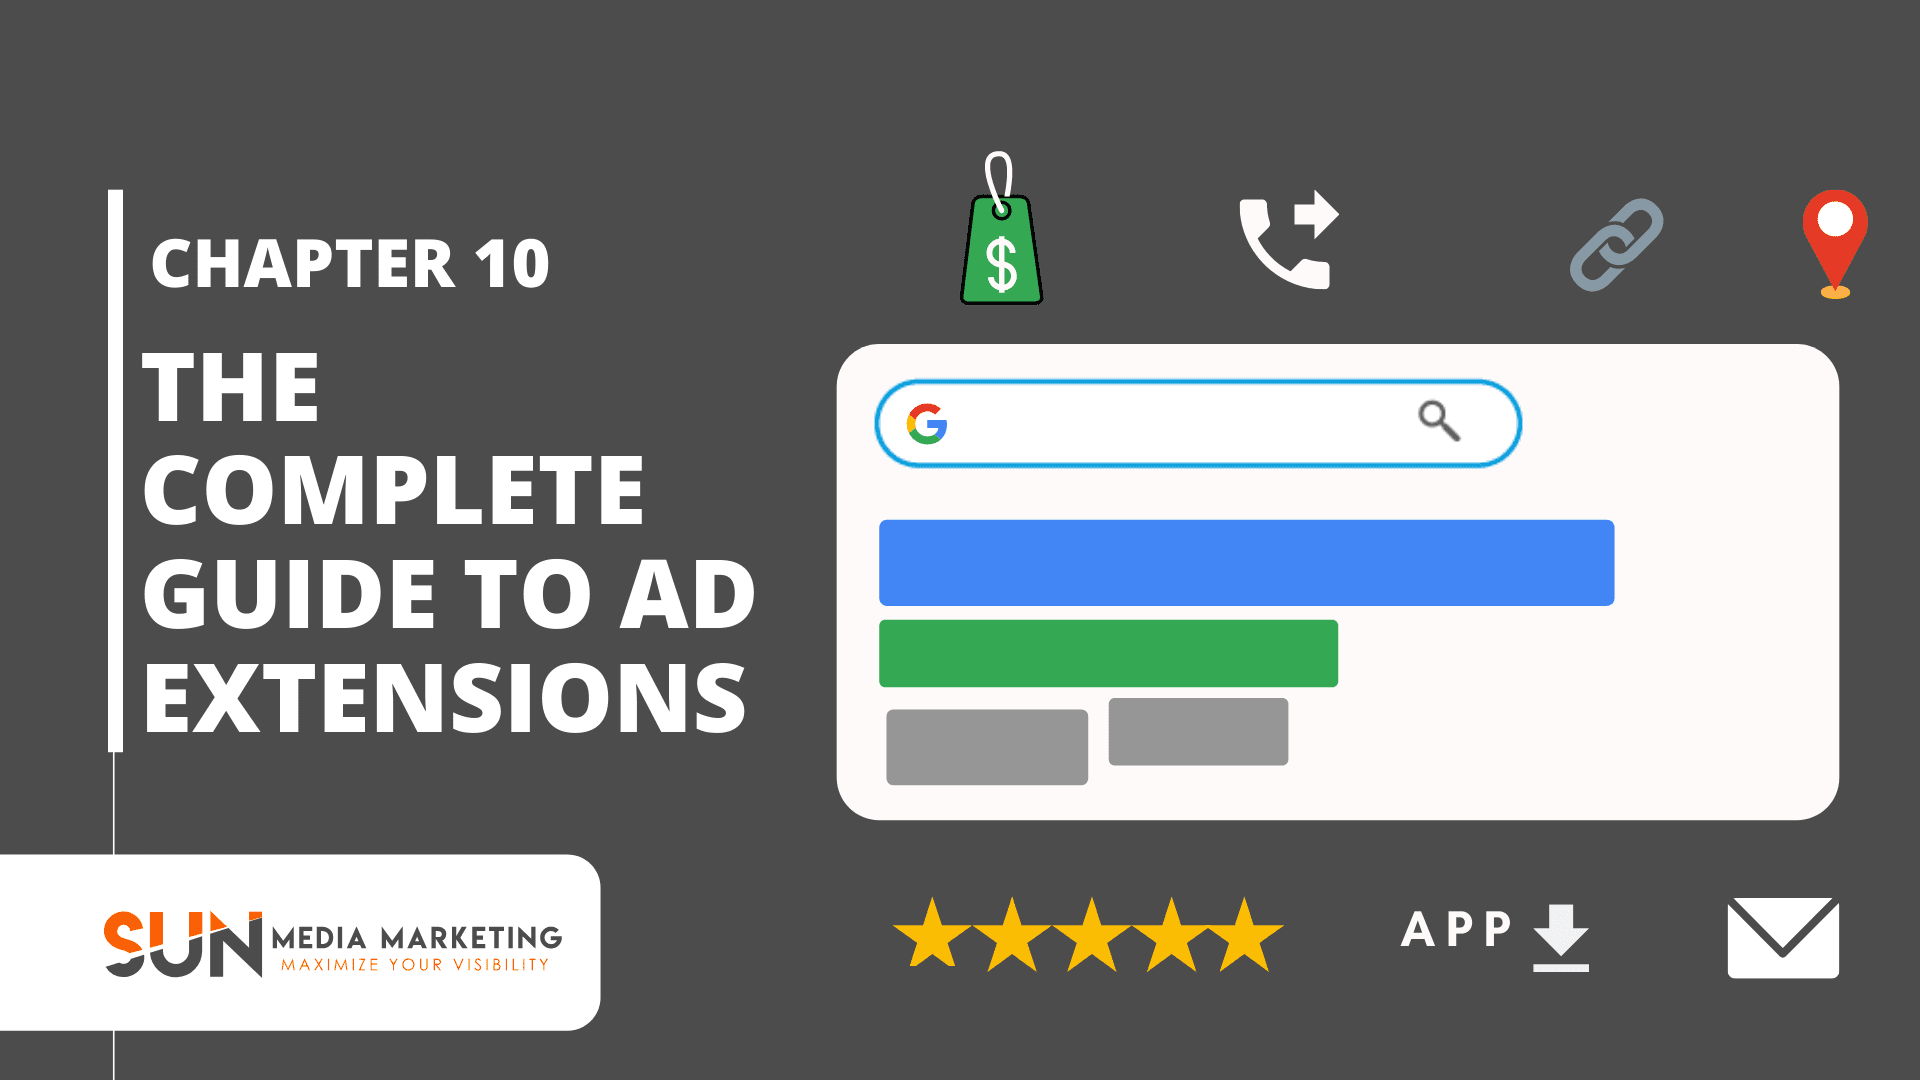 The Complete Guide to Ad Extensions